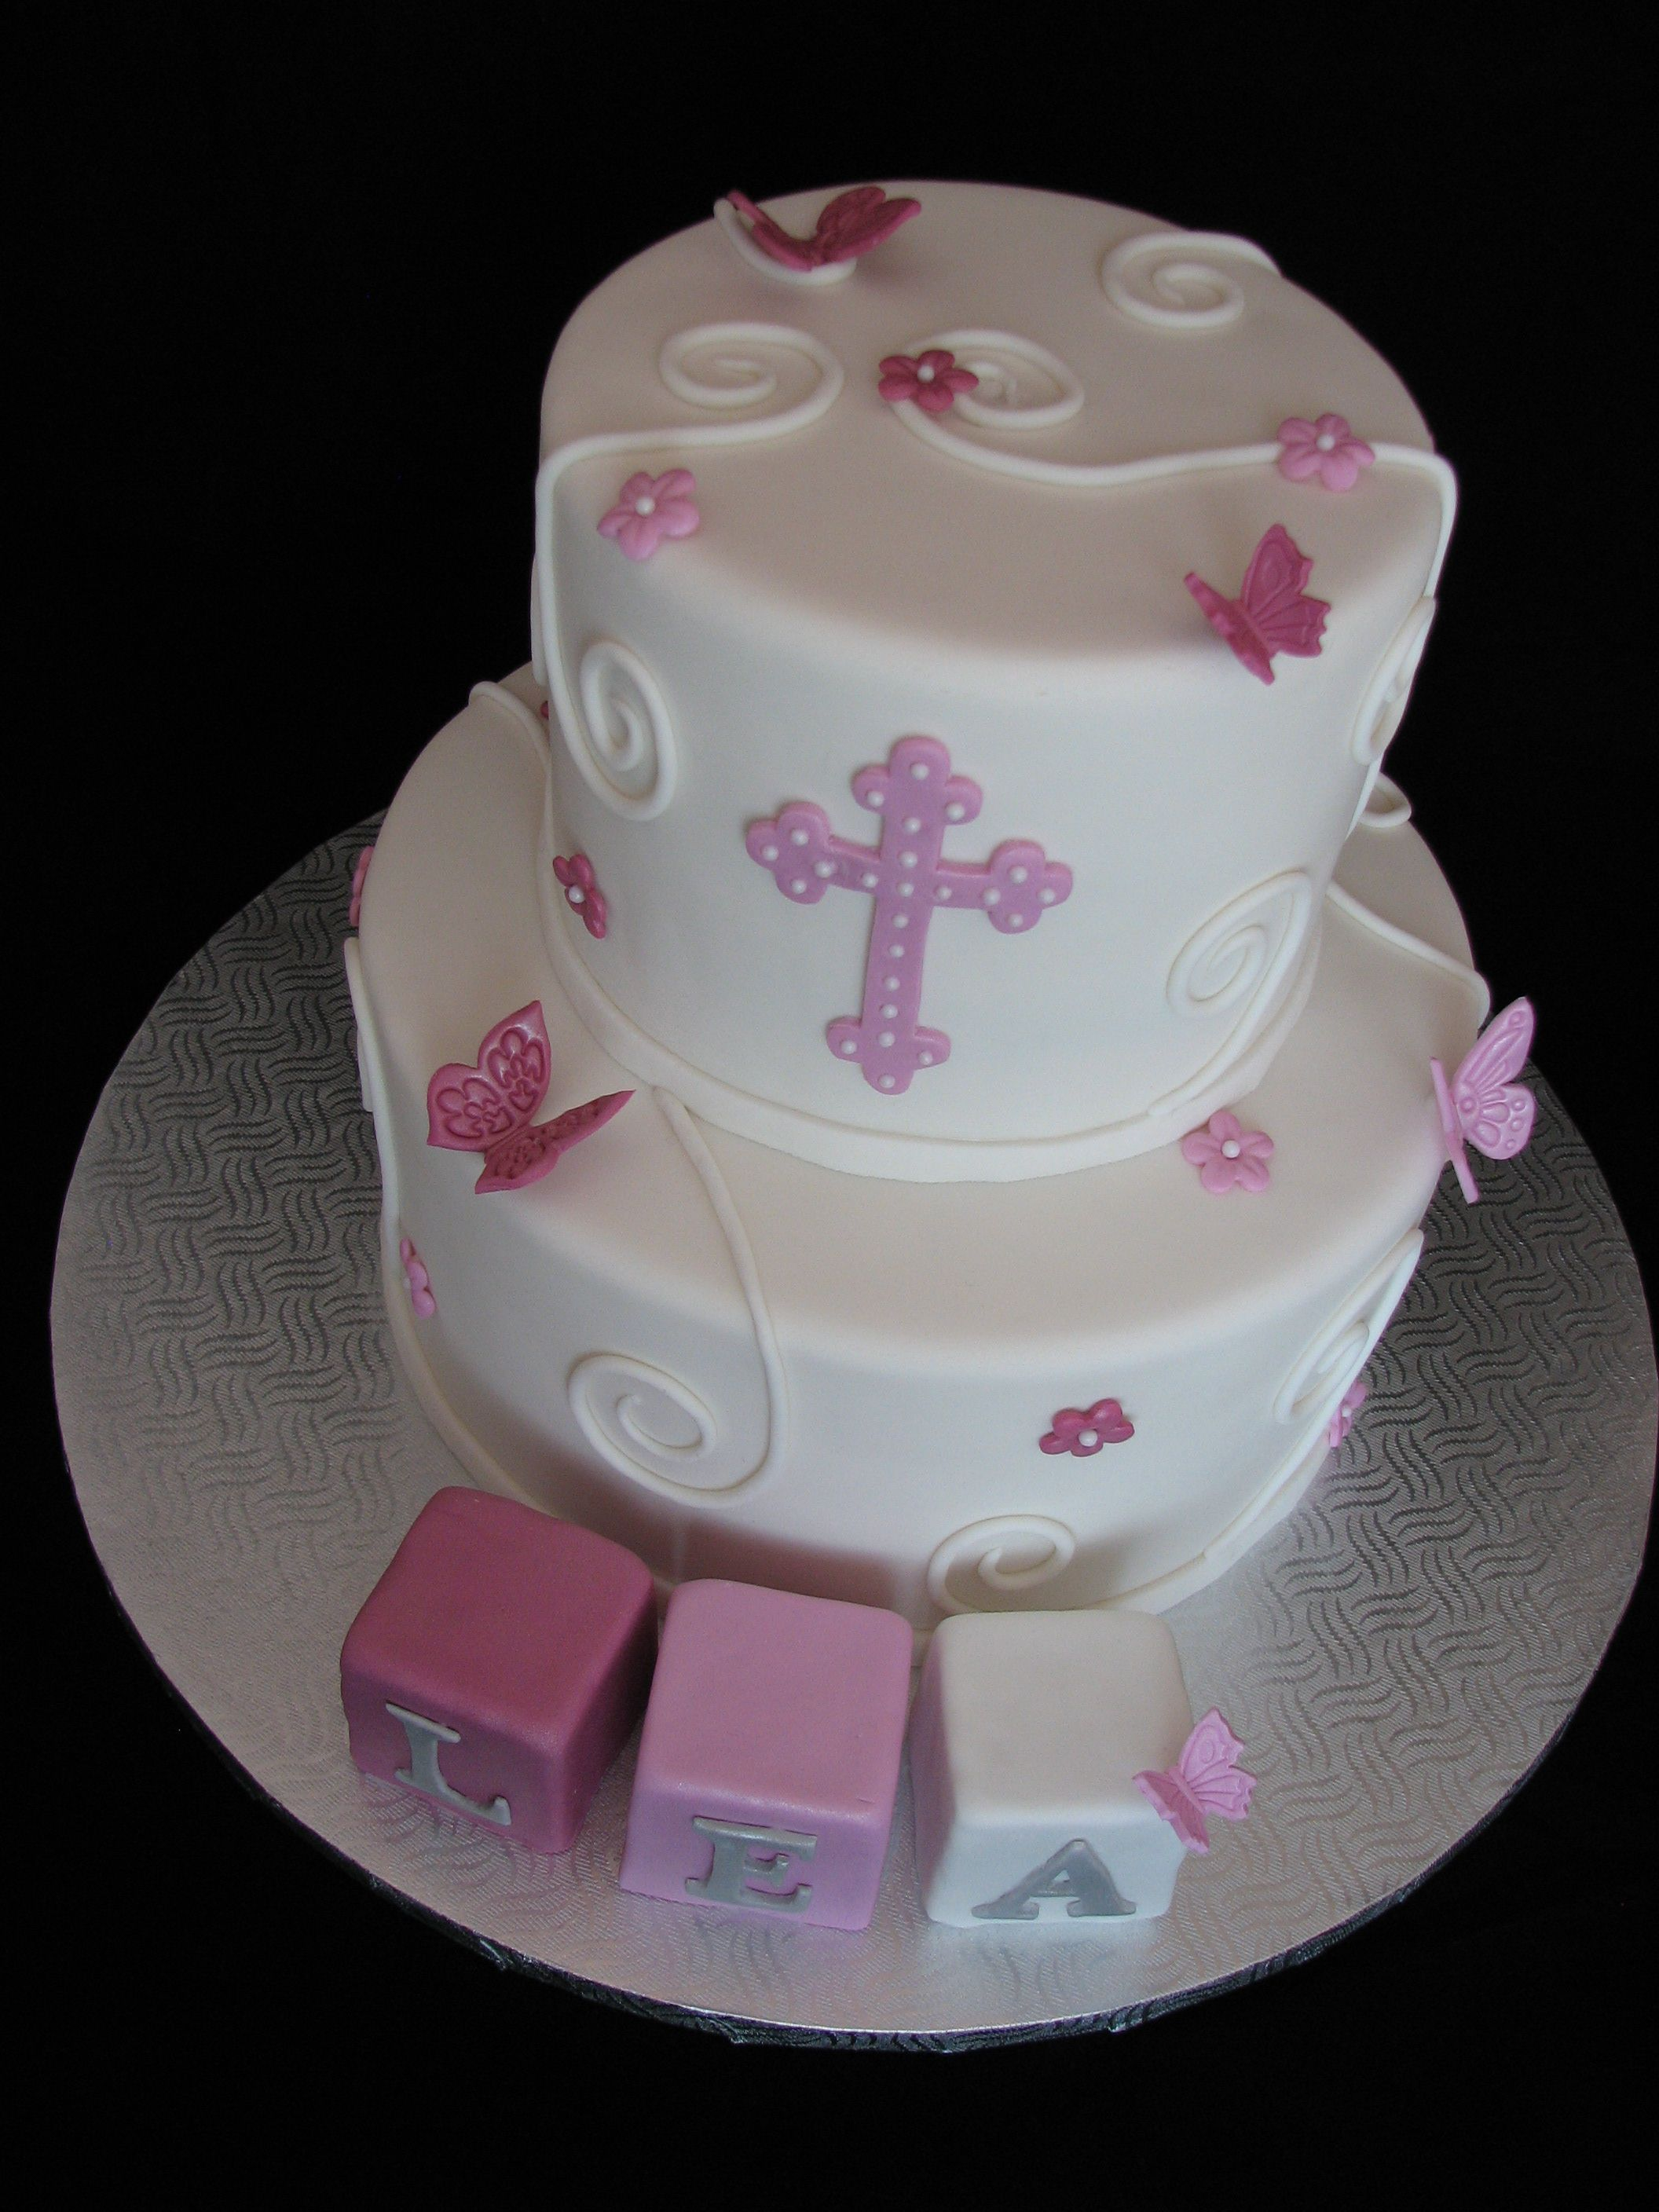 Cake g teau bapt me baptism christening fille girl papillon butterfly cake cake christening - Decoration gateau bapteme fille ...